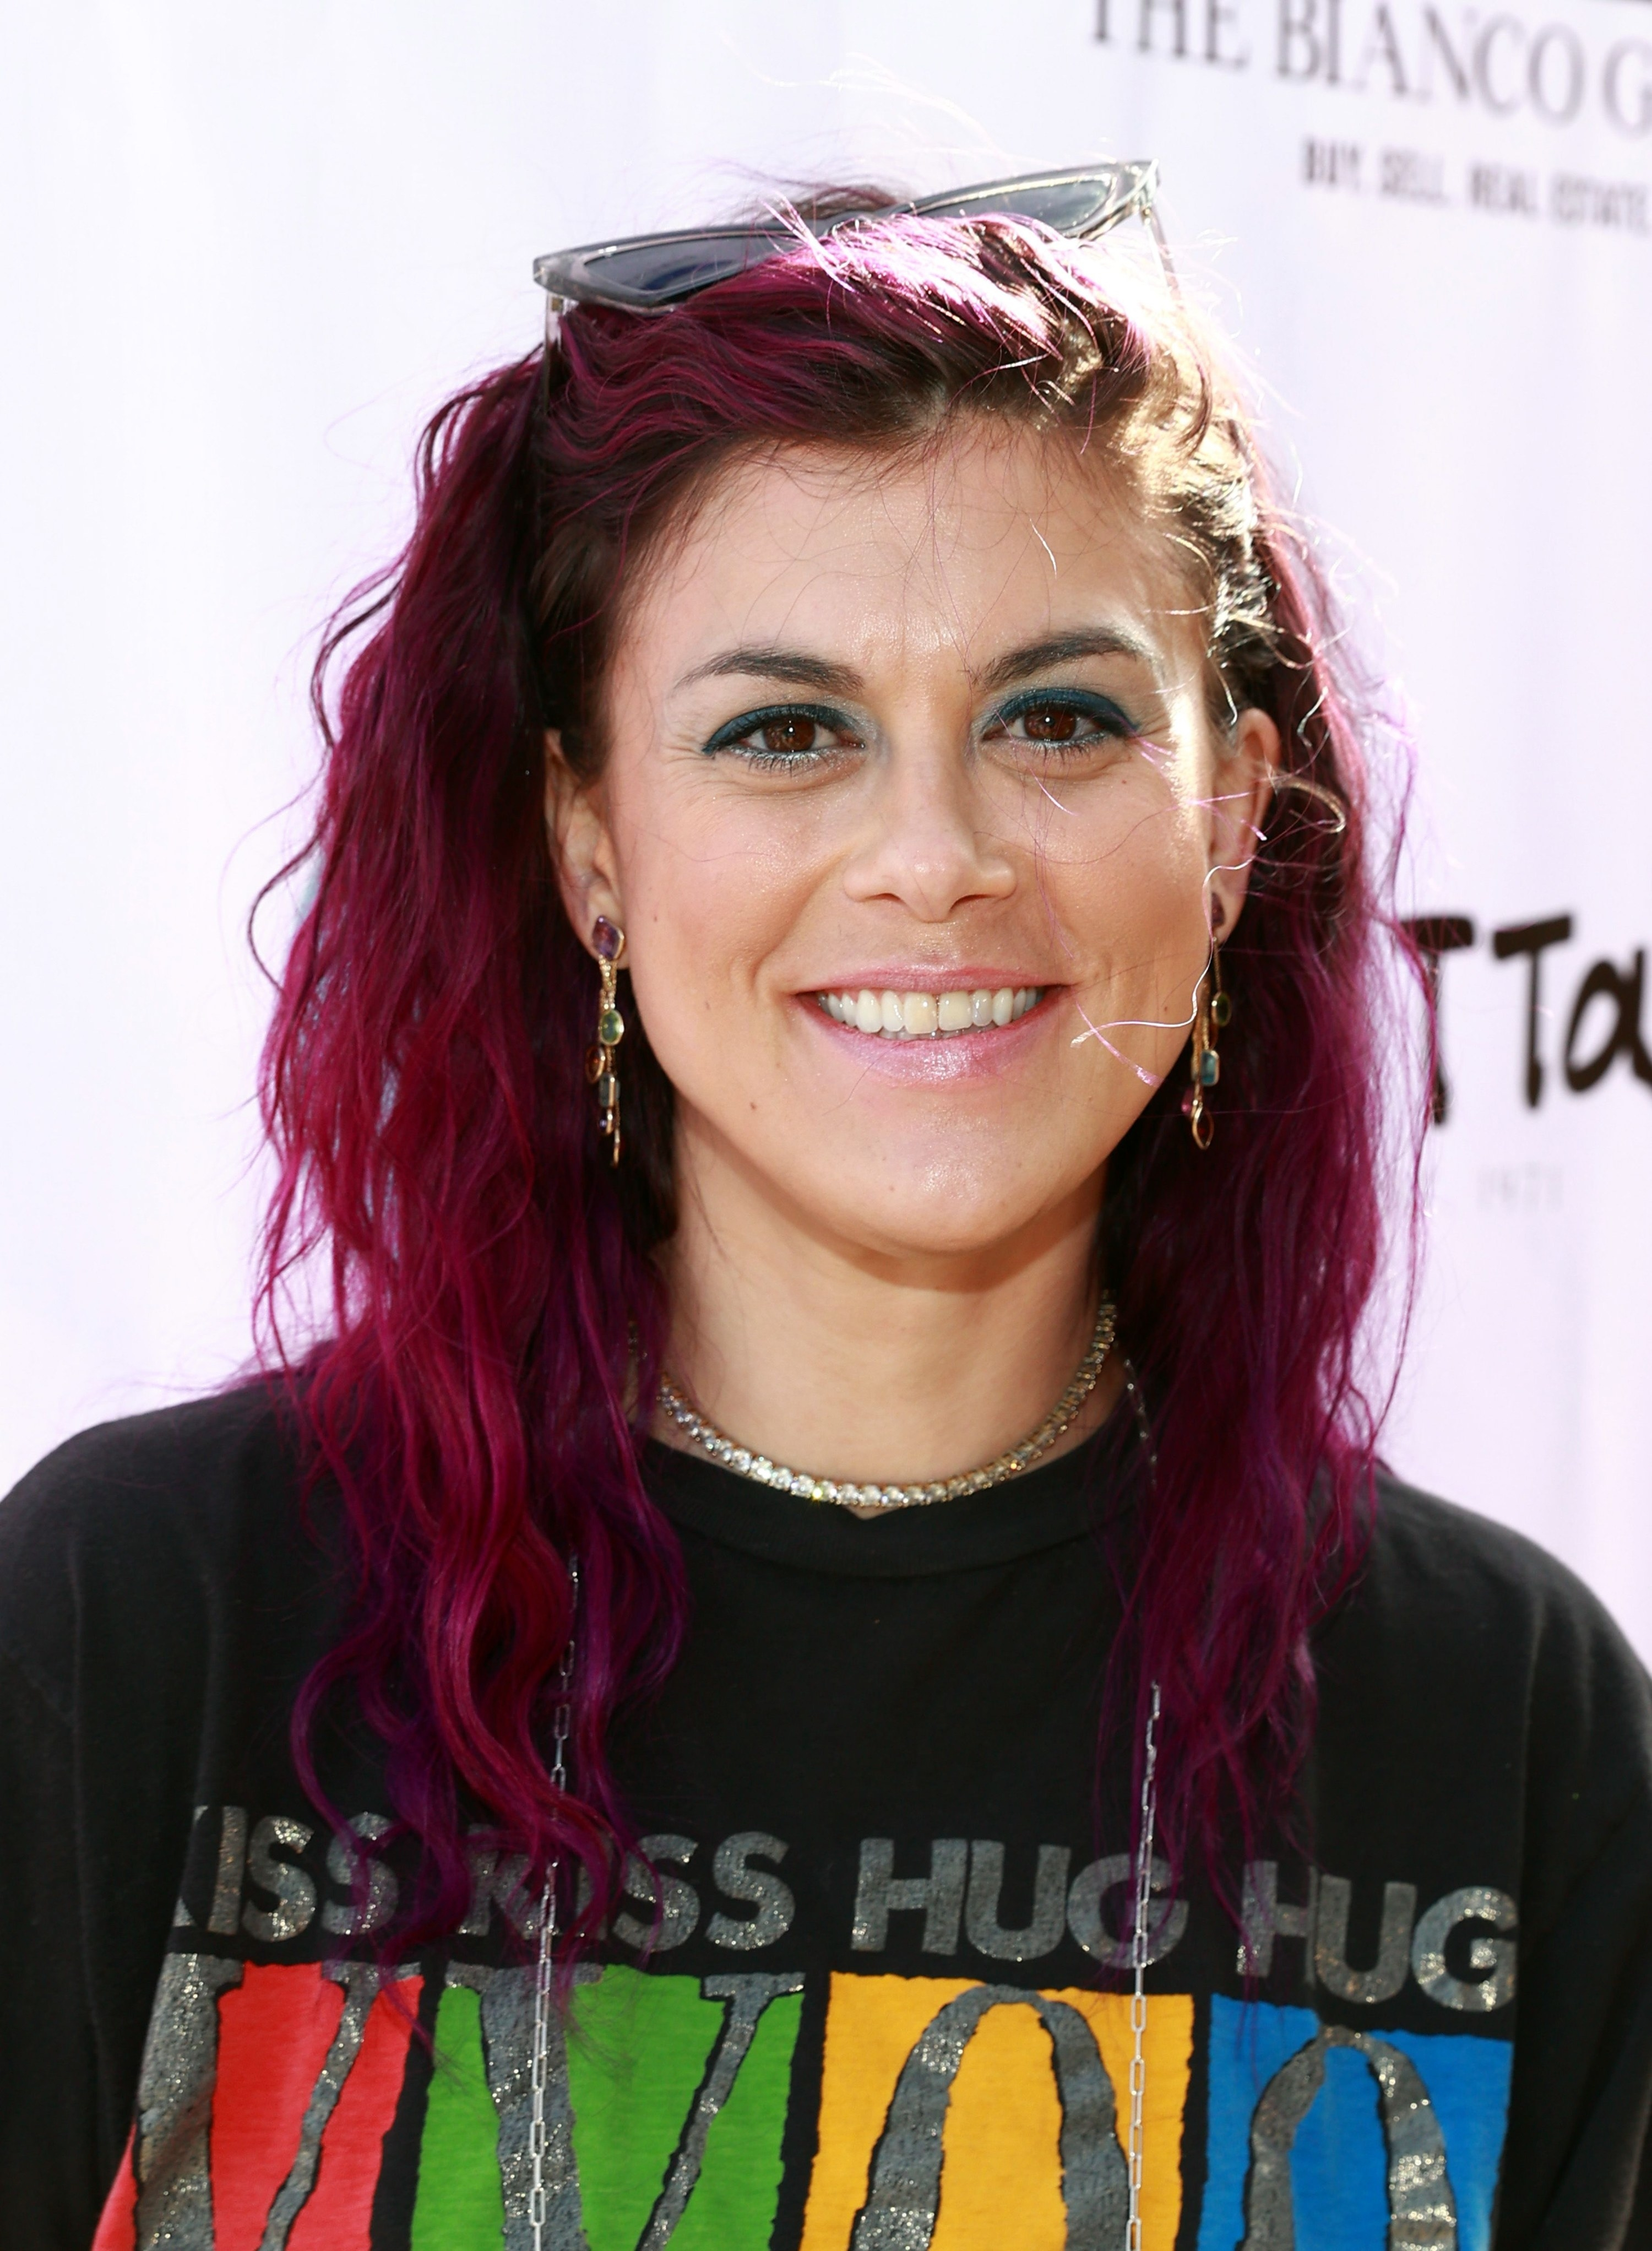 Lindsey Shaw is pictured smiling